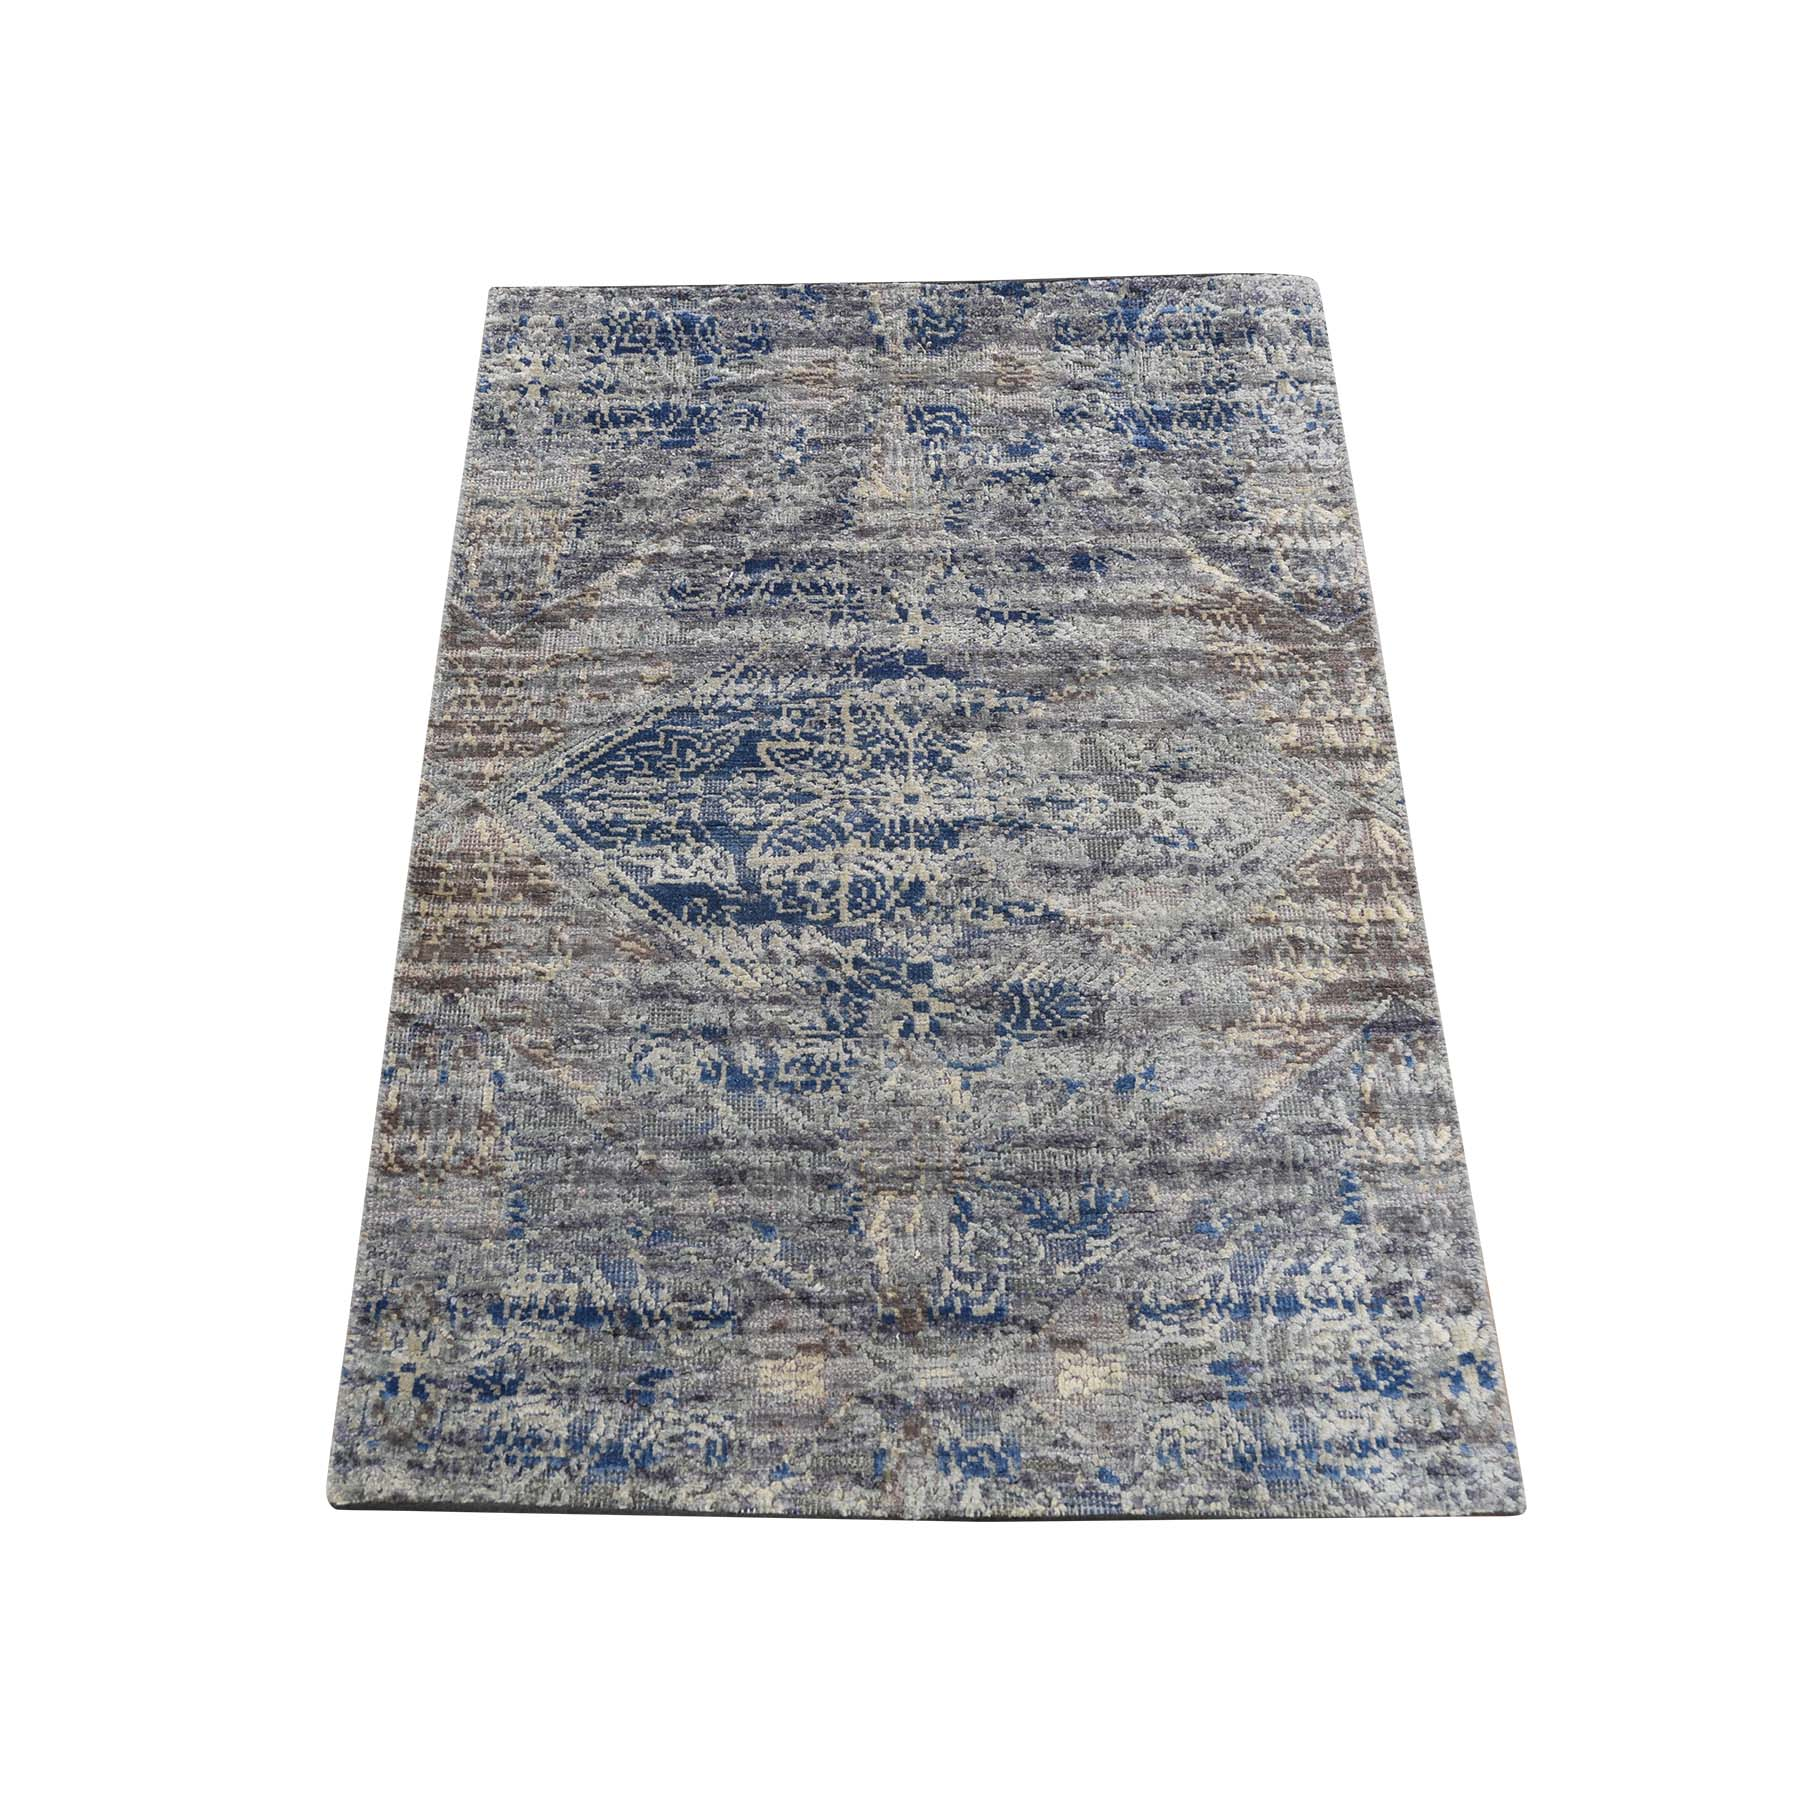 "2'X3'1"" Erased Rossets,Silk With Textured Wool Denim Blue Hand-Knotted Oriental Sample Rug moadd8c9"